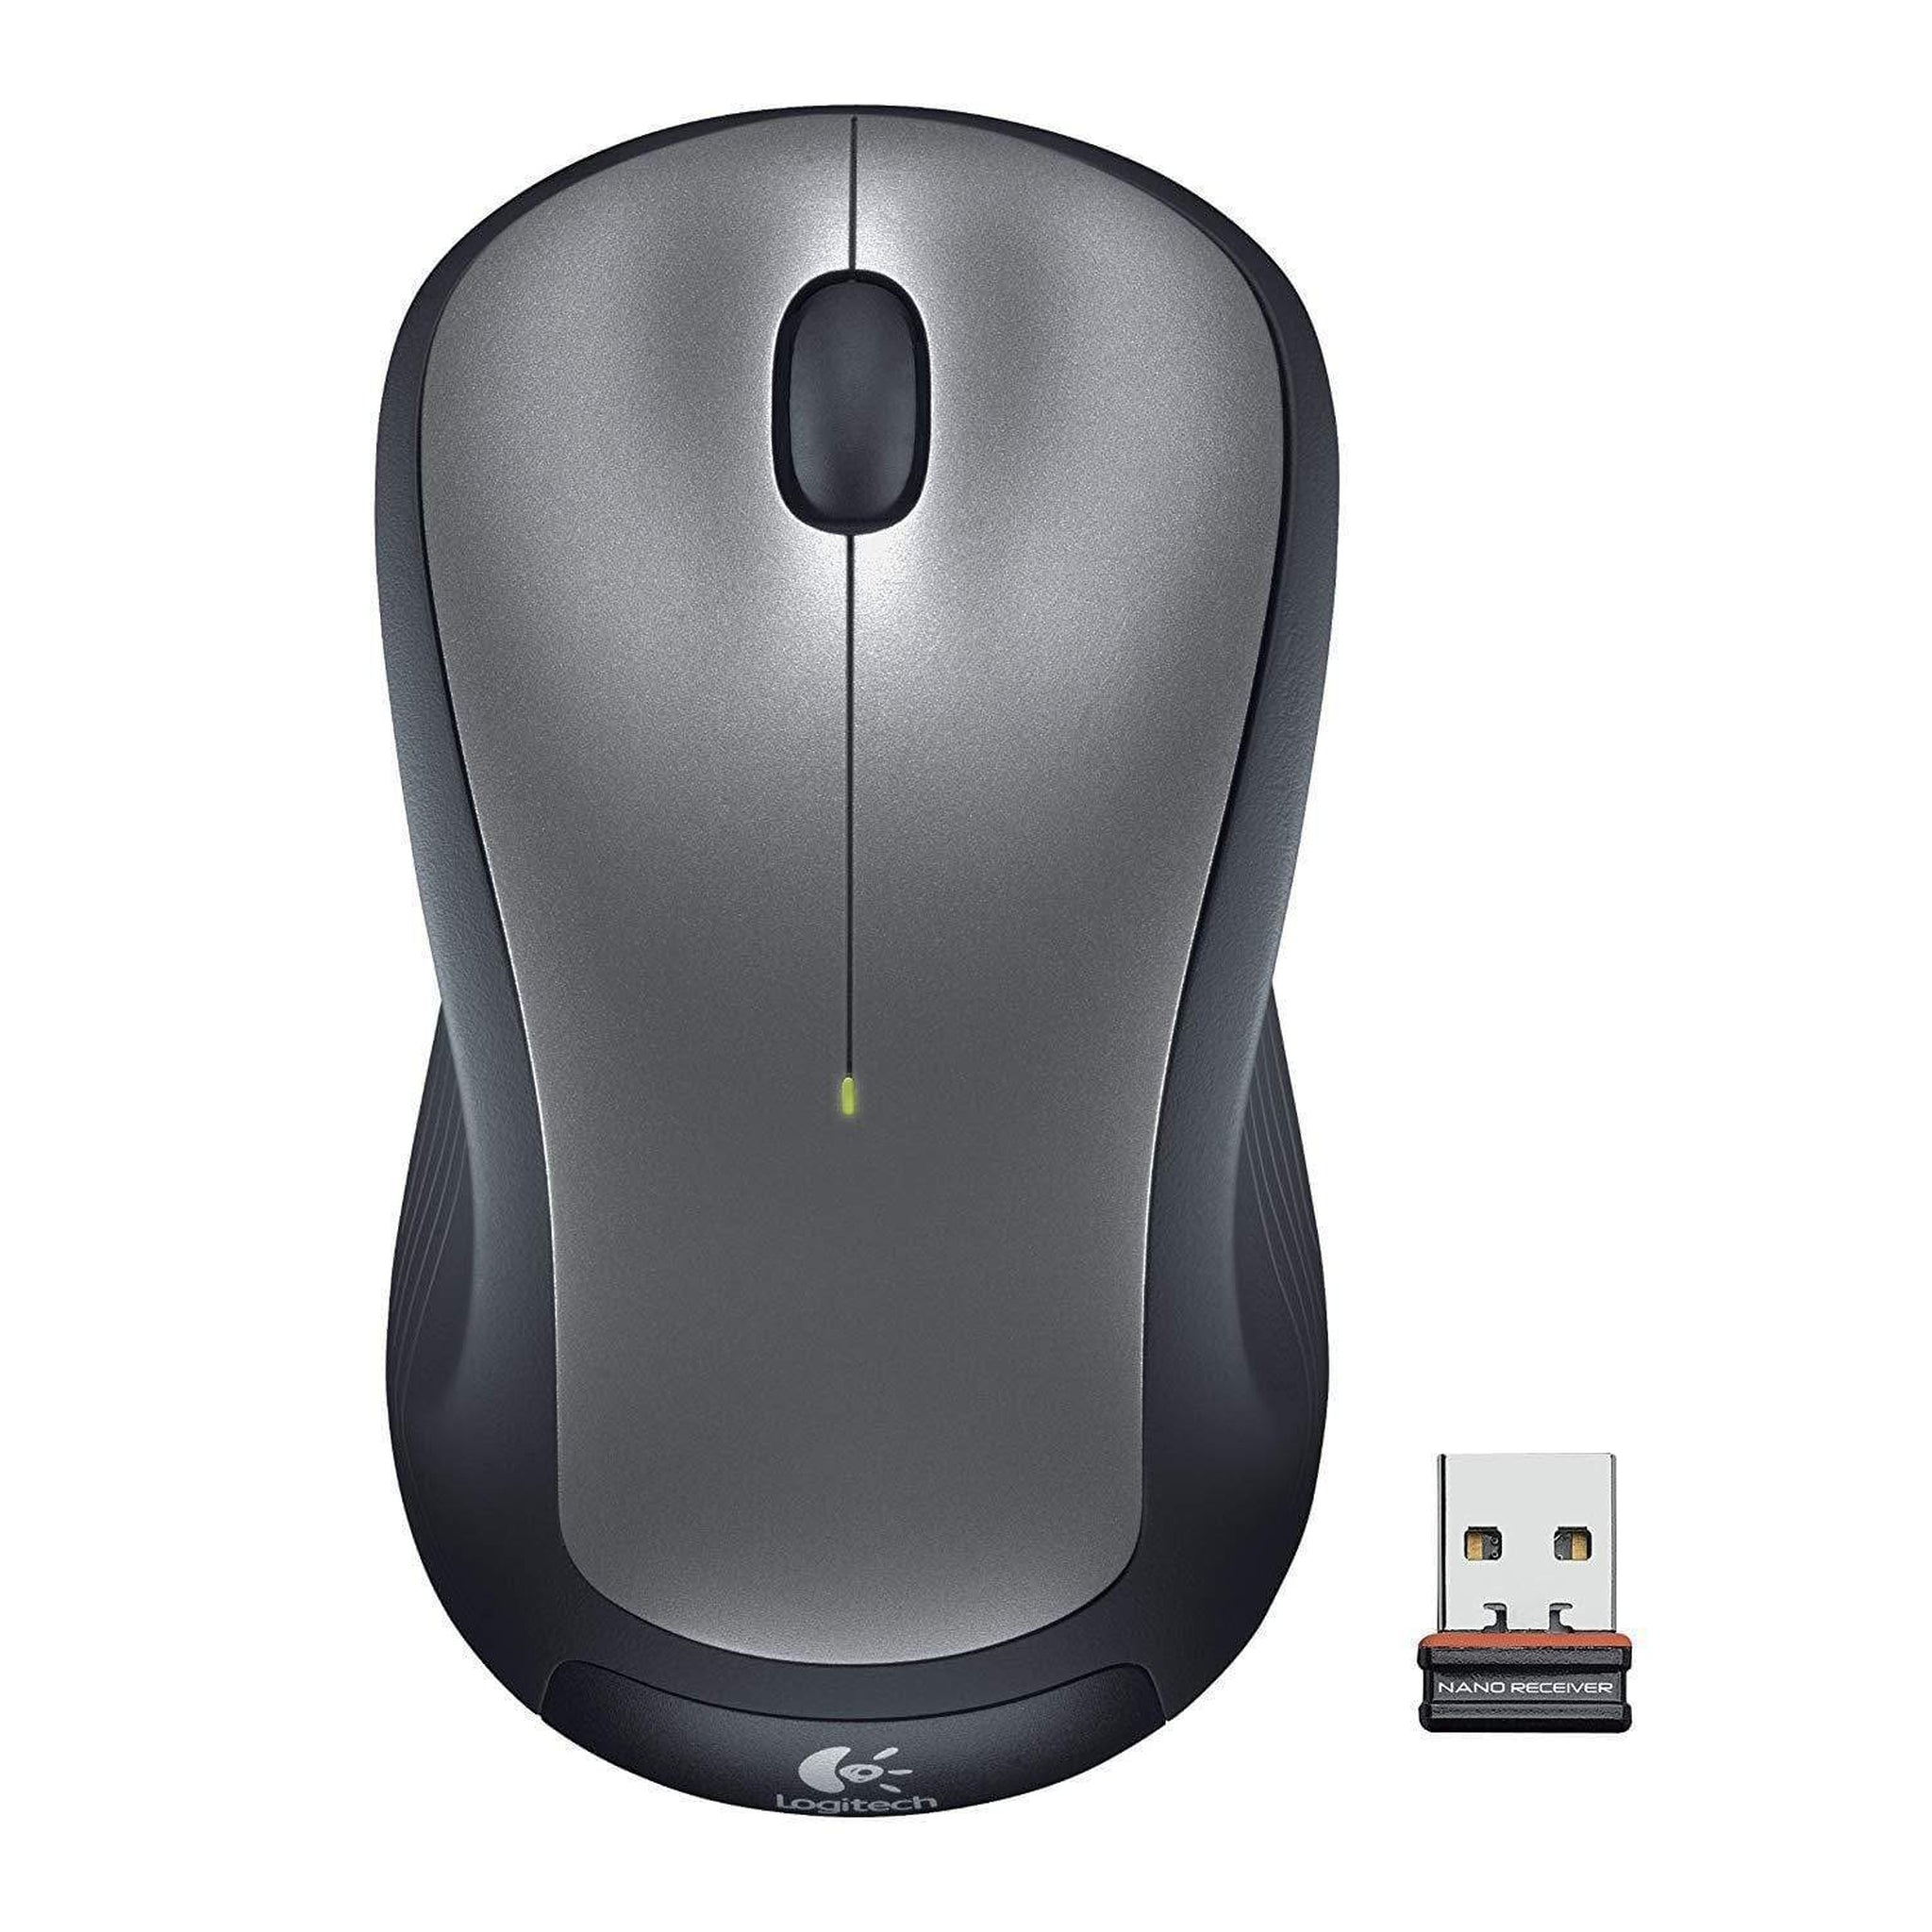 Logitech M310 Mouse - Choice Computer Technologies